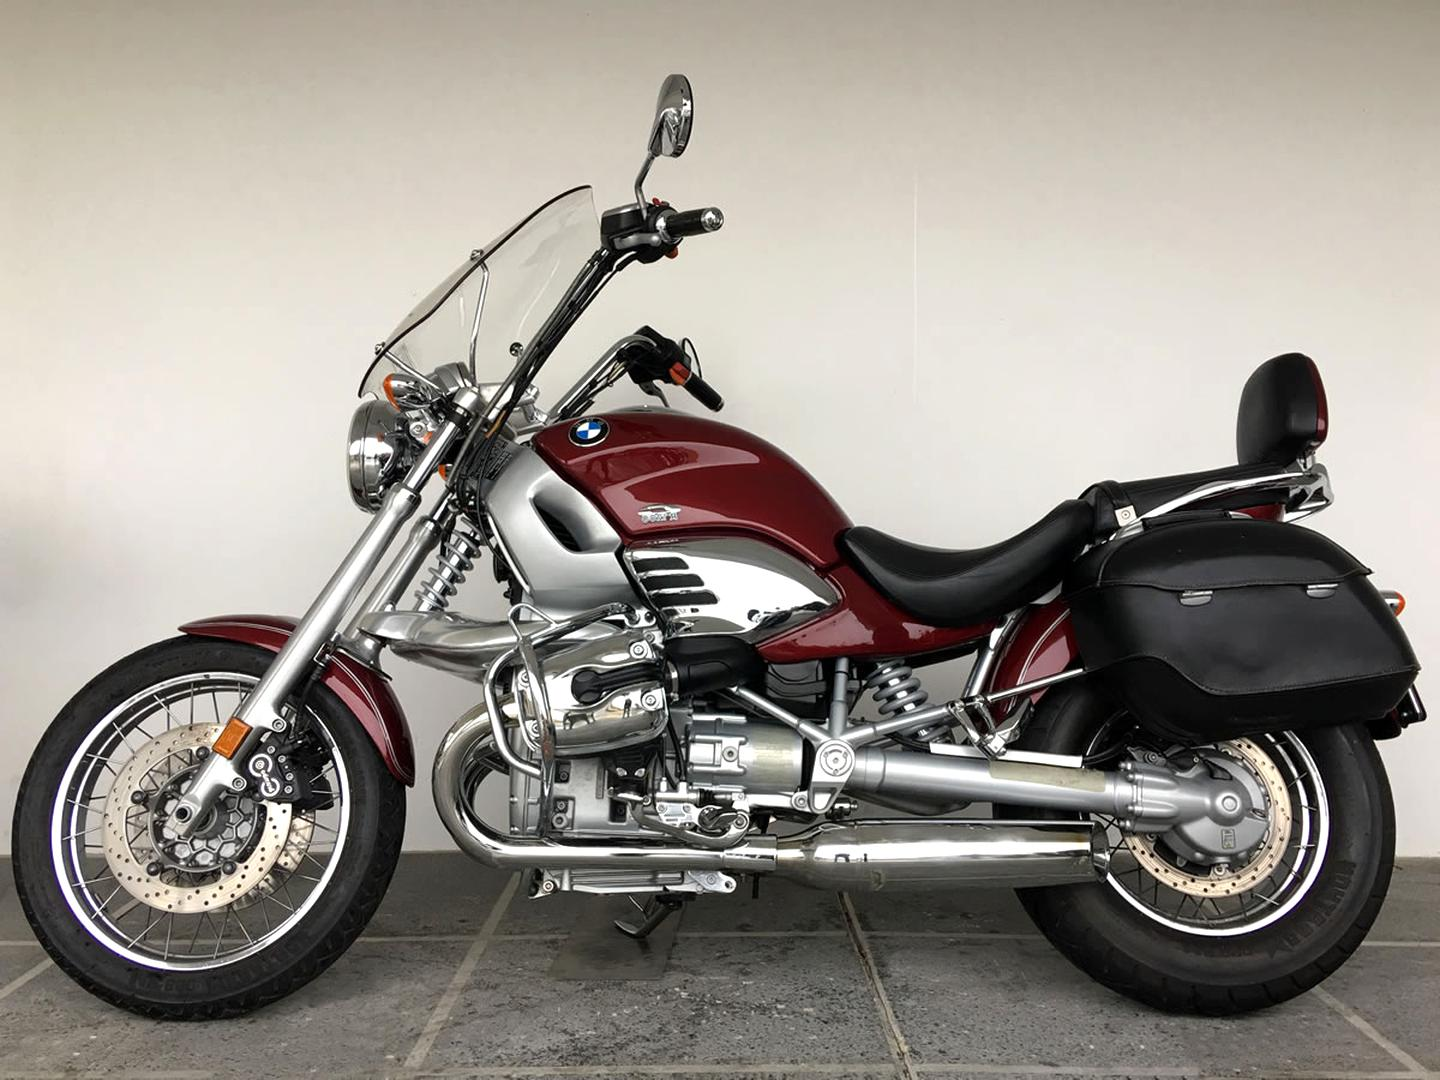 r1200c for sale